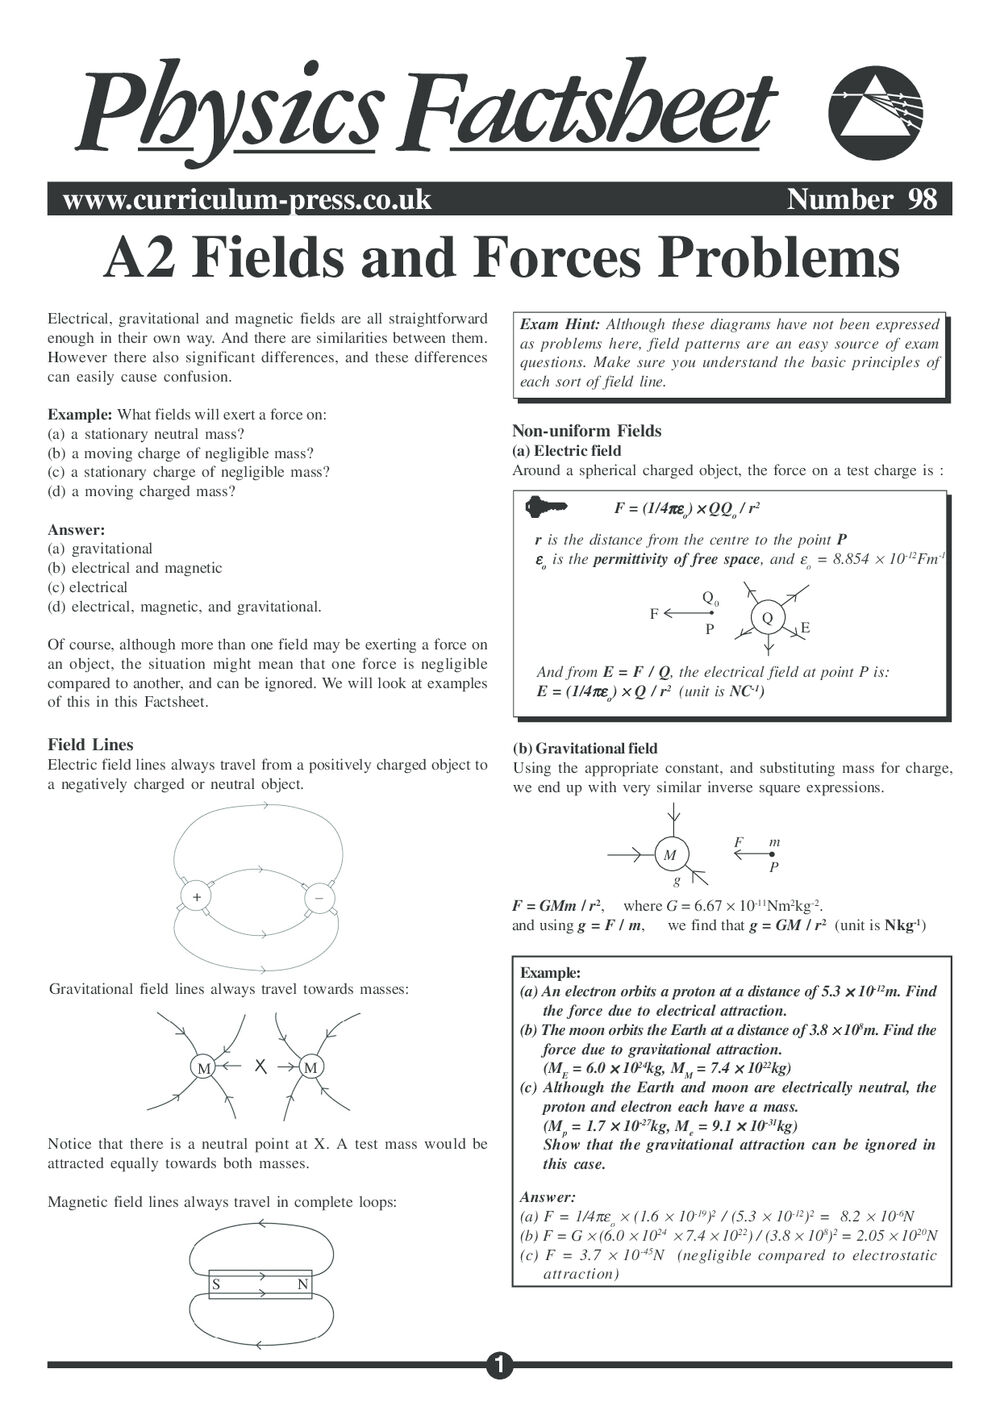 A2 Fields and Forces Problems - Curriculum Press